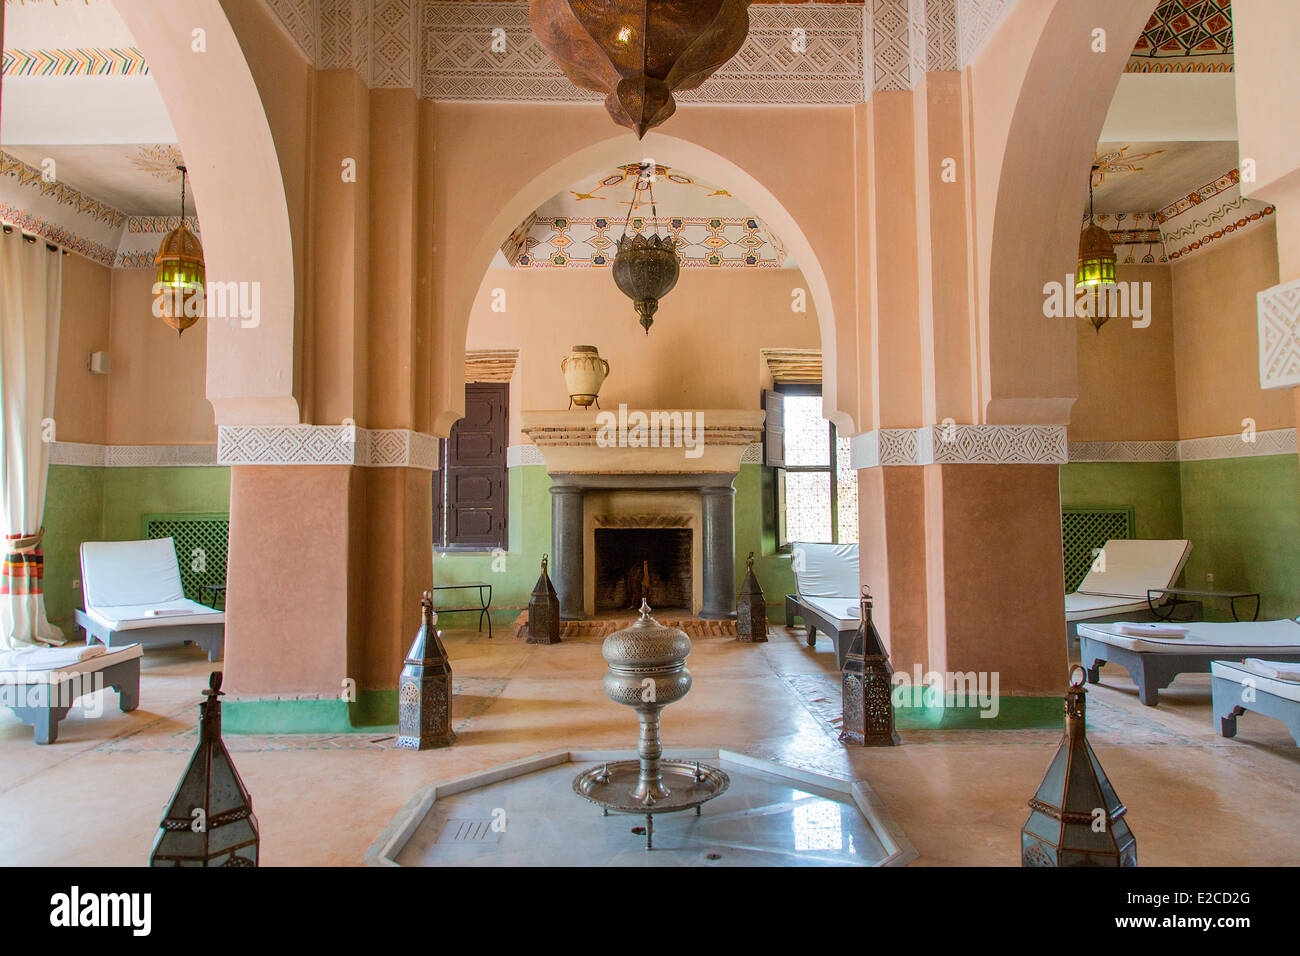 Morocco, High Atlas, Marrakesh, Imperial City, the Beldi Country Club, The Spa Stock Photo